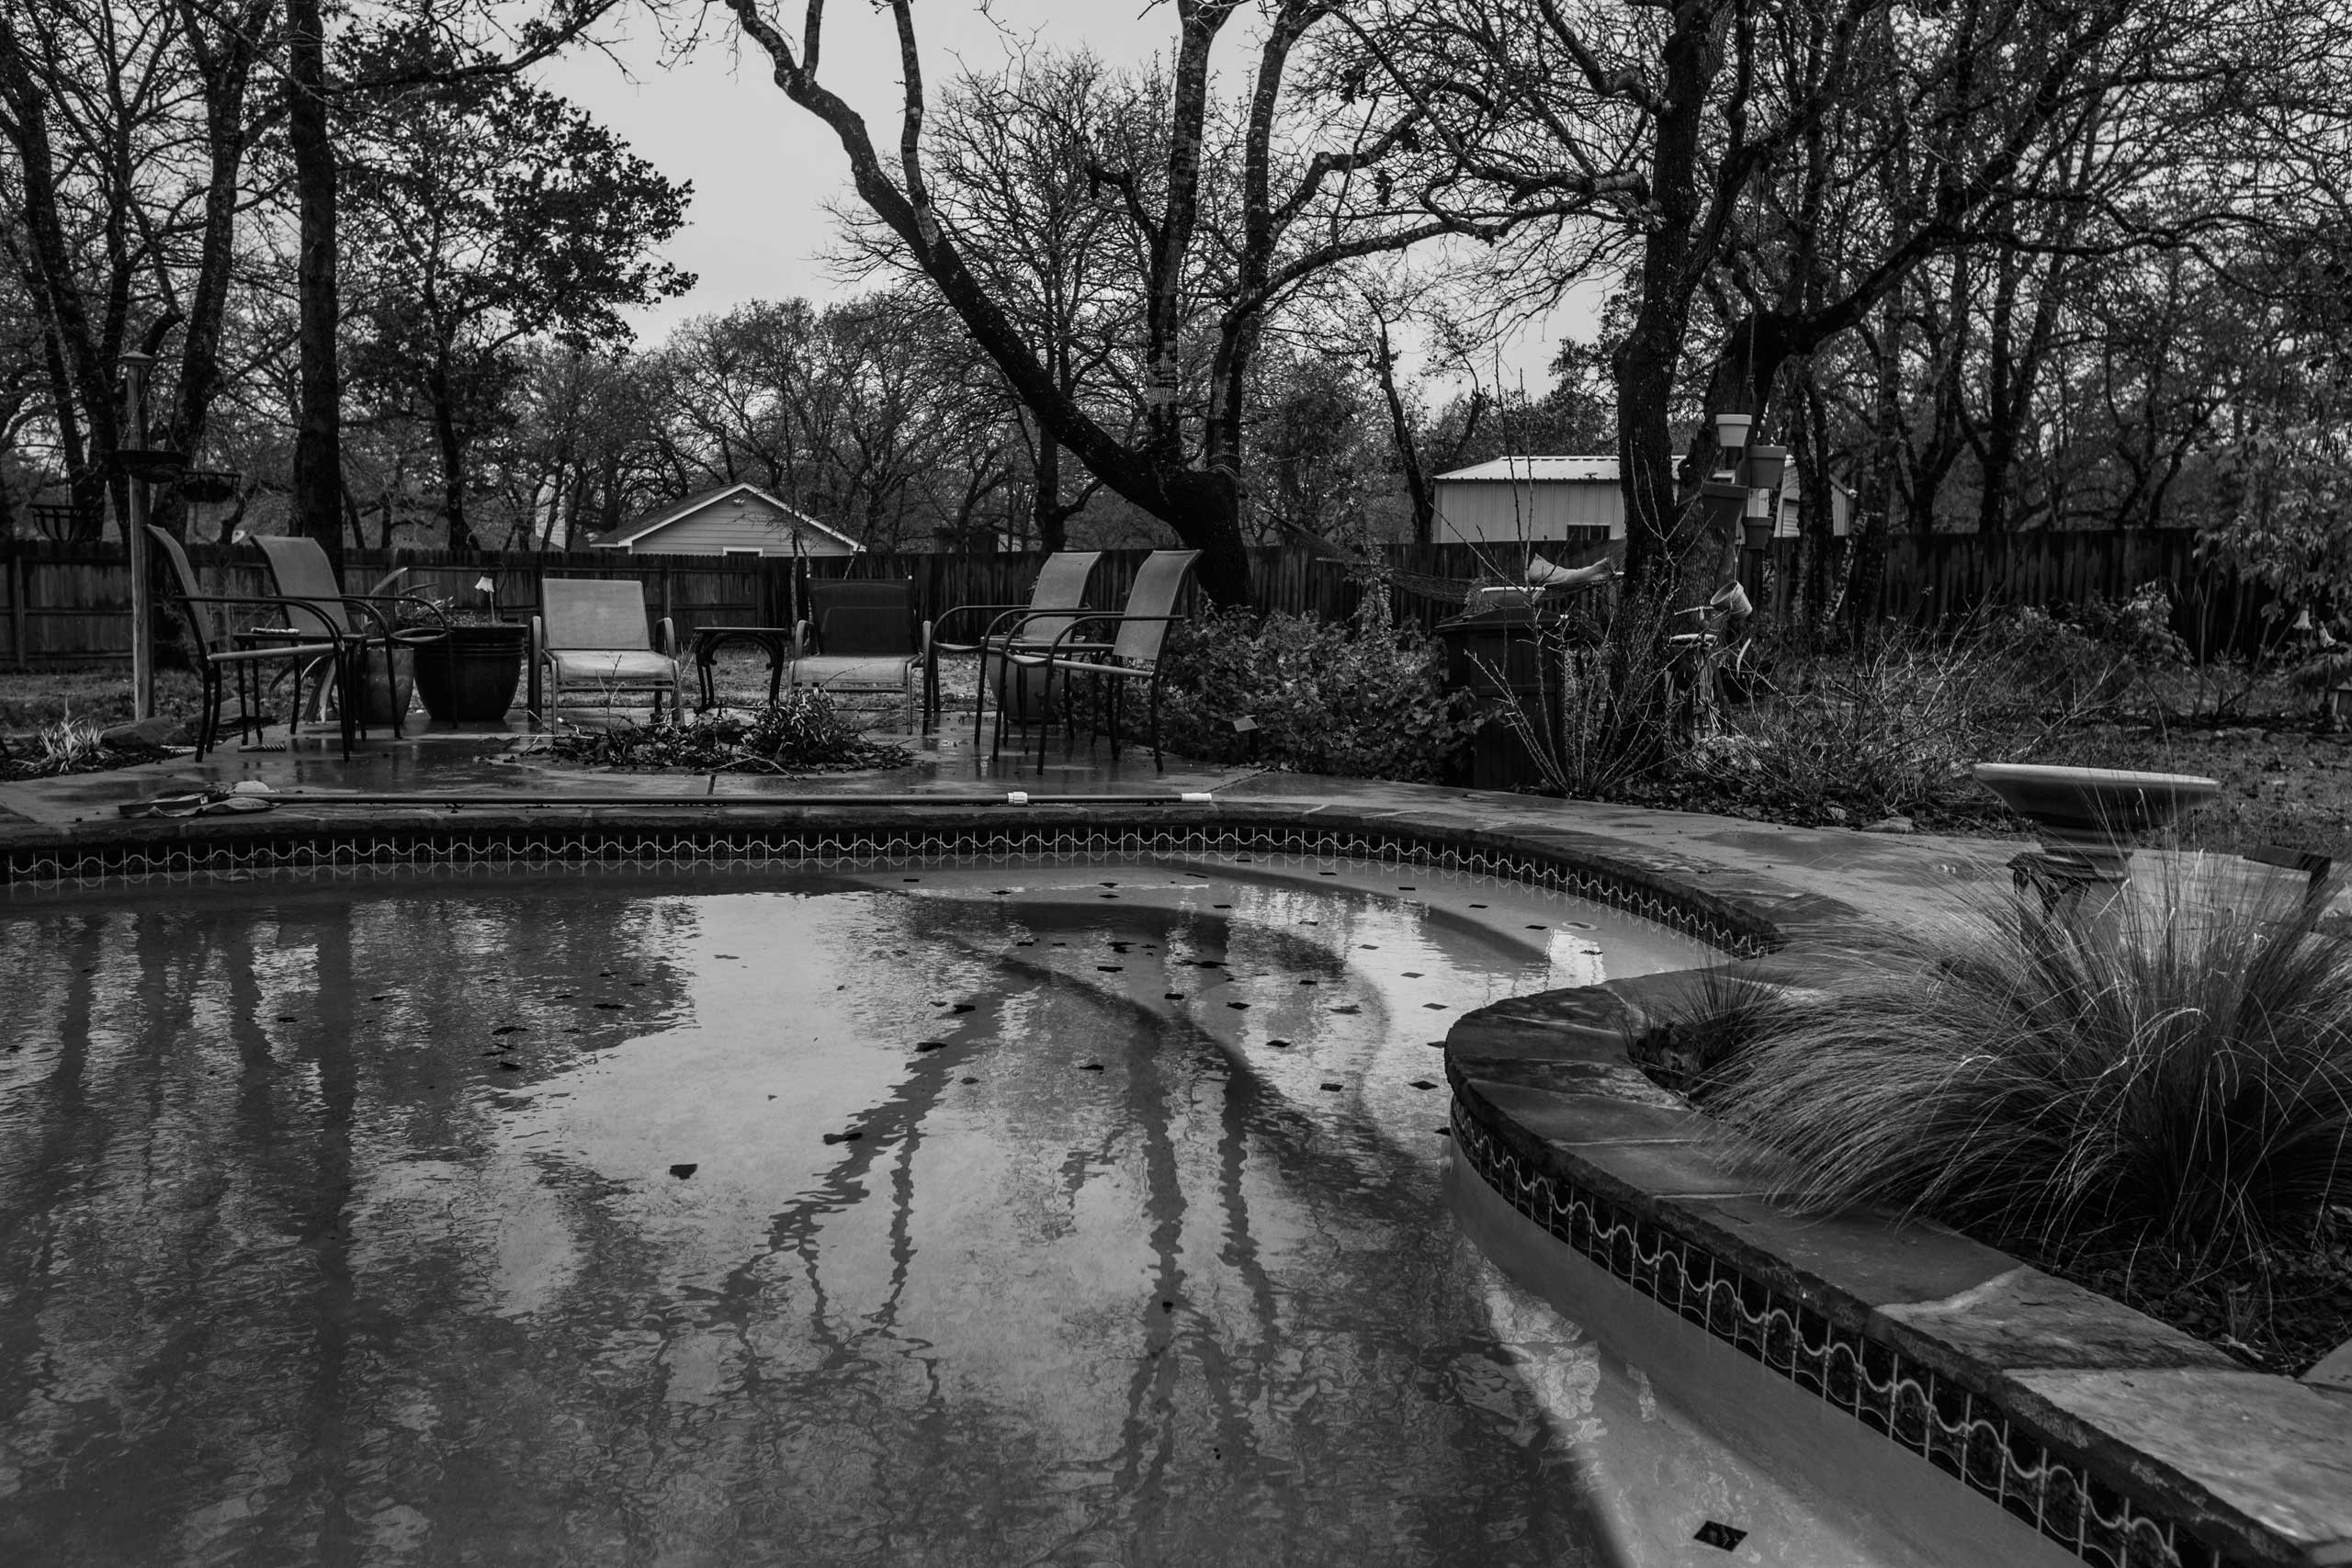 When his PTSD grew overwhelming, Clay Ward took his gun, waded into the pool behind their house, and pulled the trigger. A year later, his wife Sabine tried to finish a bottle of pills he had left behind.